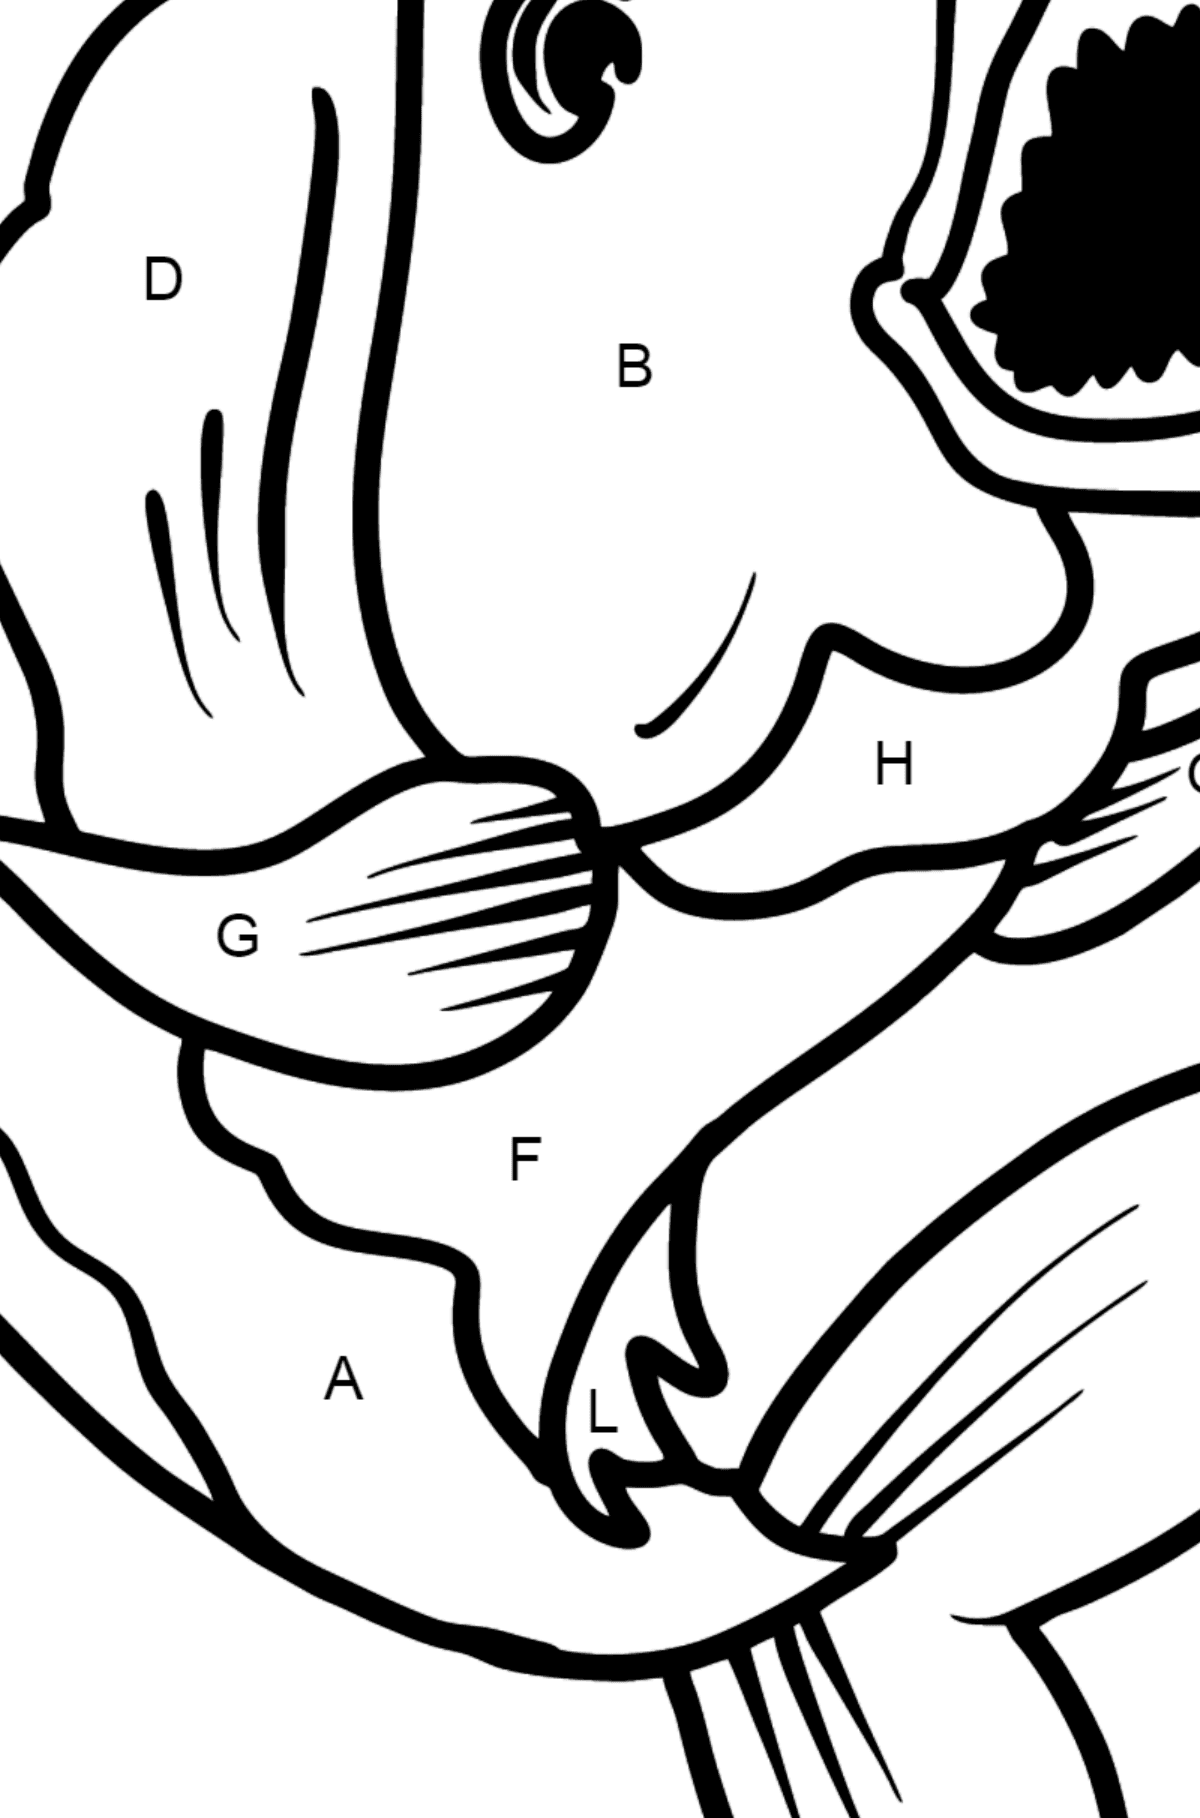 Piranha coloring page - Coloring by Letters for Kids